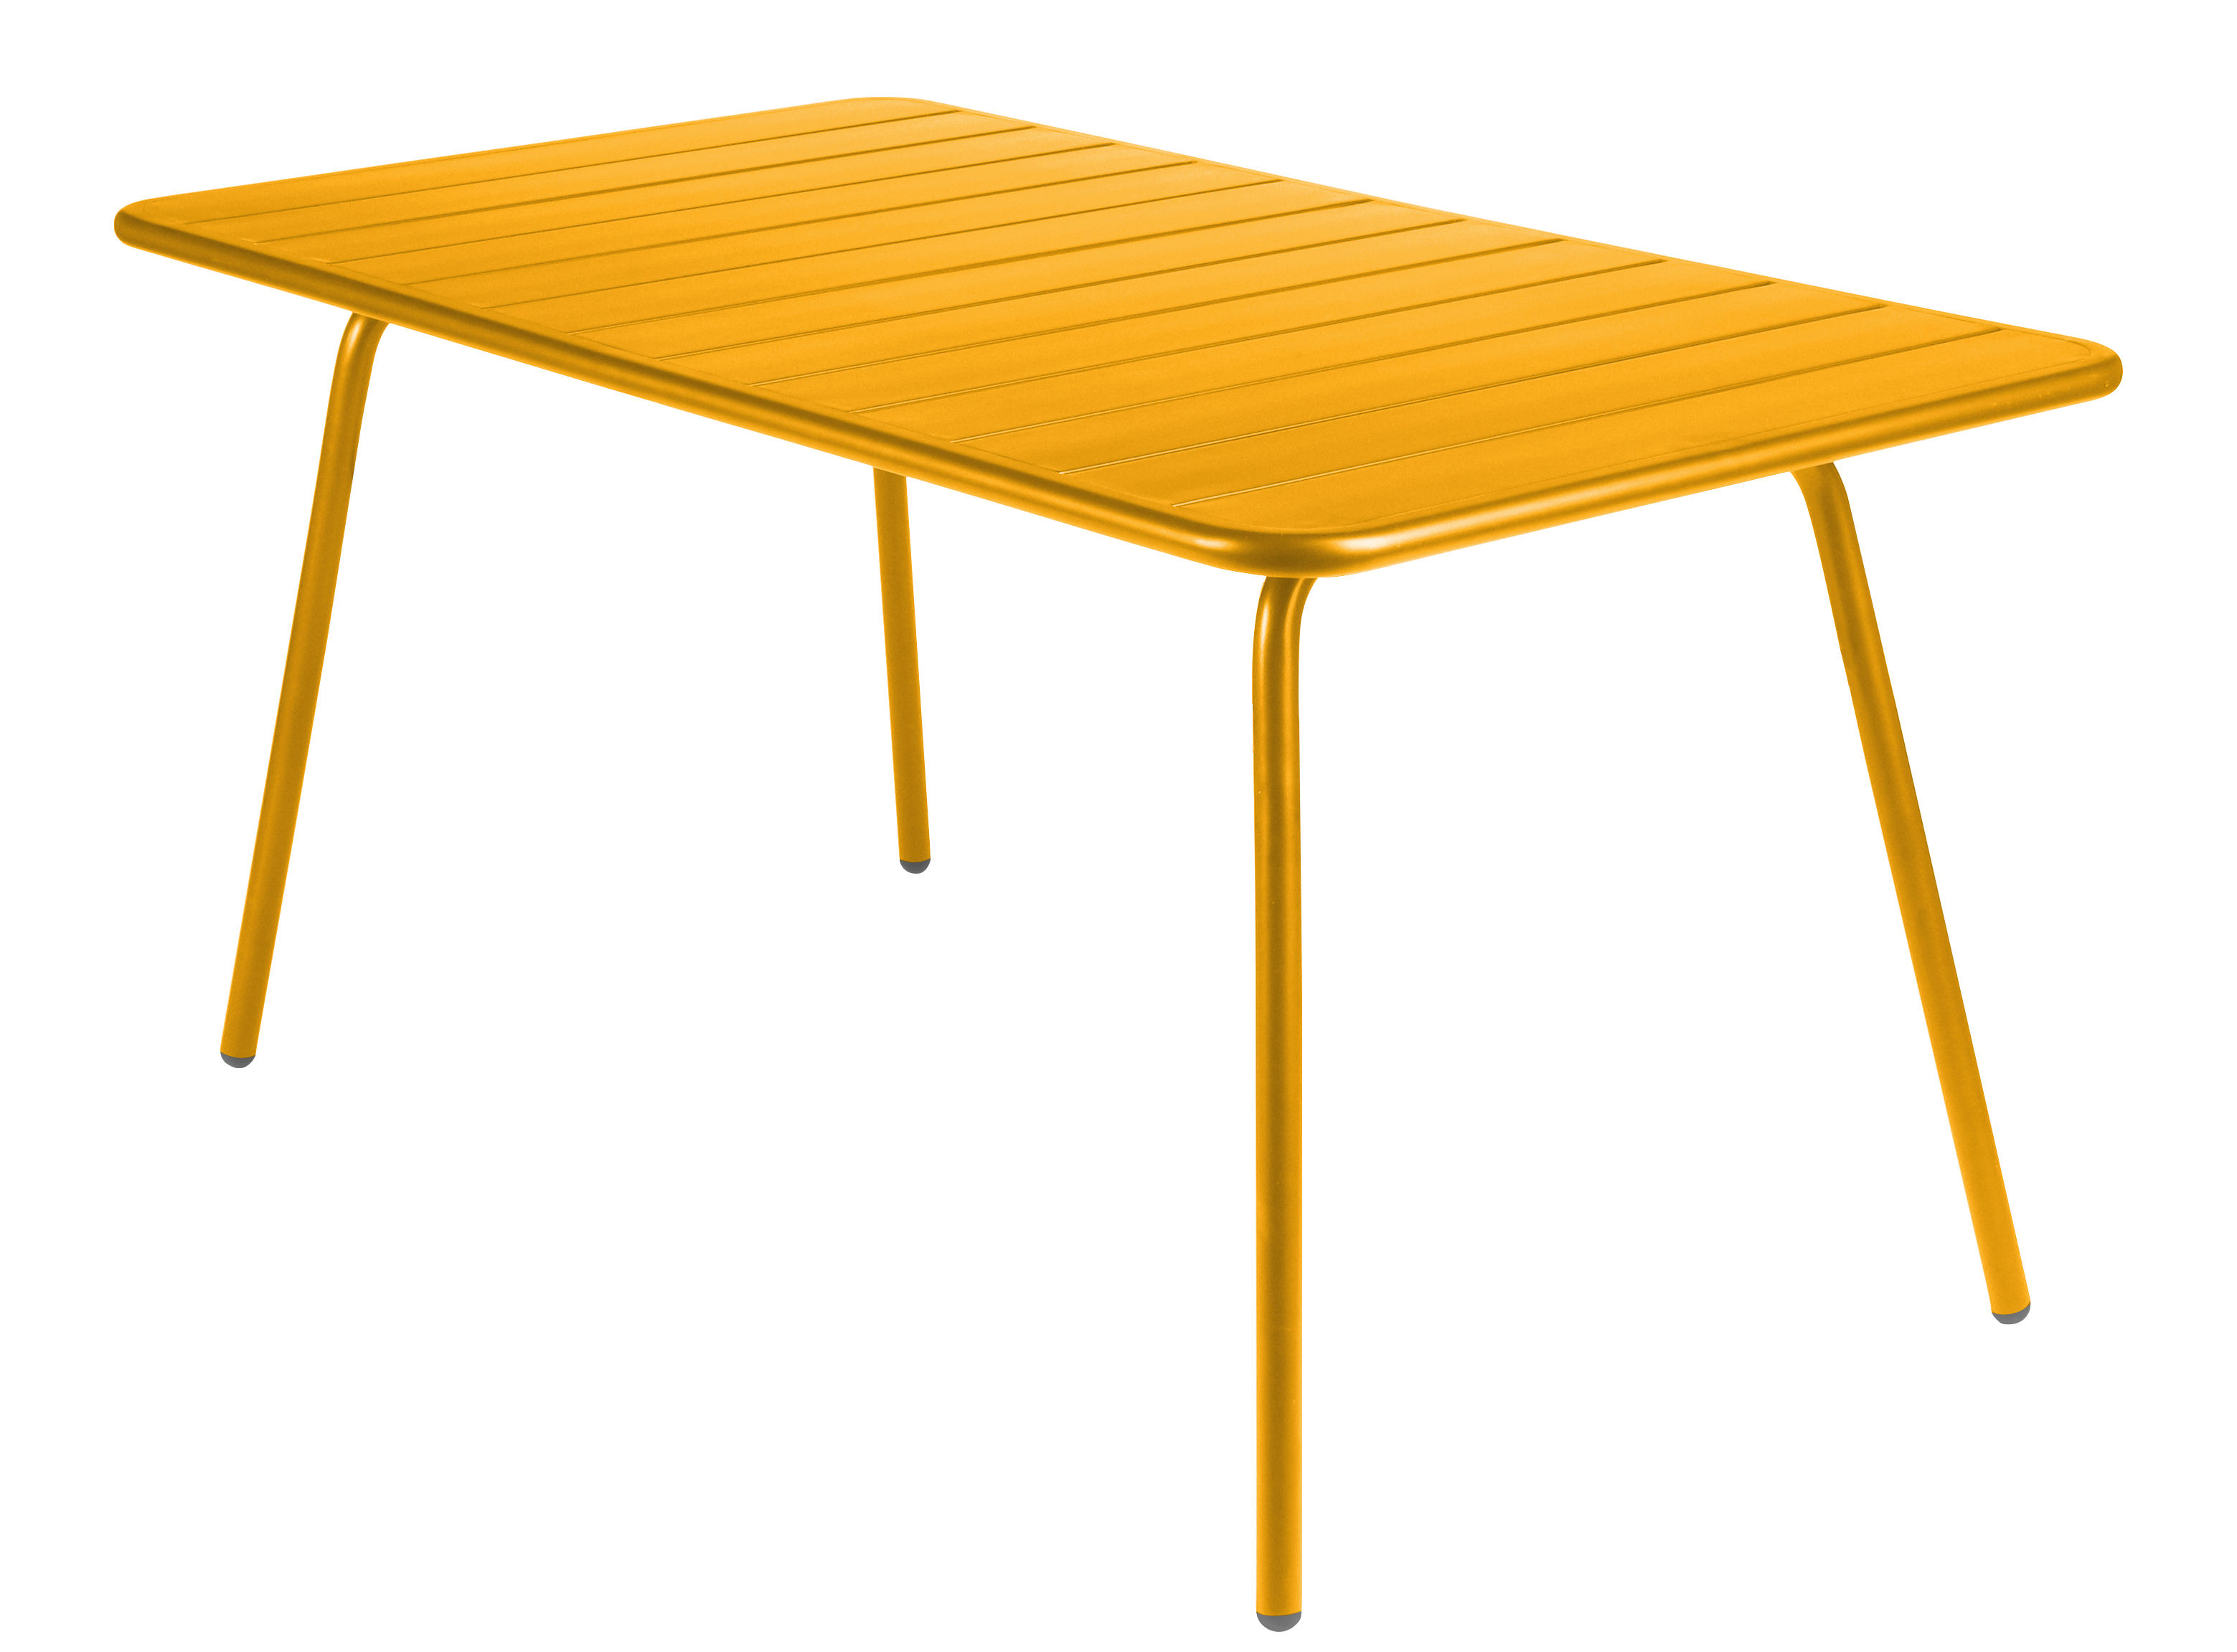 Luxembourg table honey by fermob made in design uk for Table luxembourg fermob